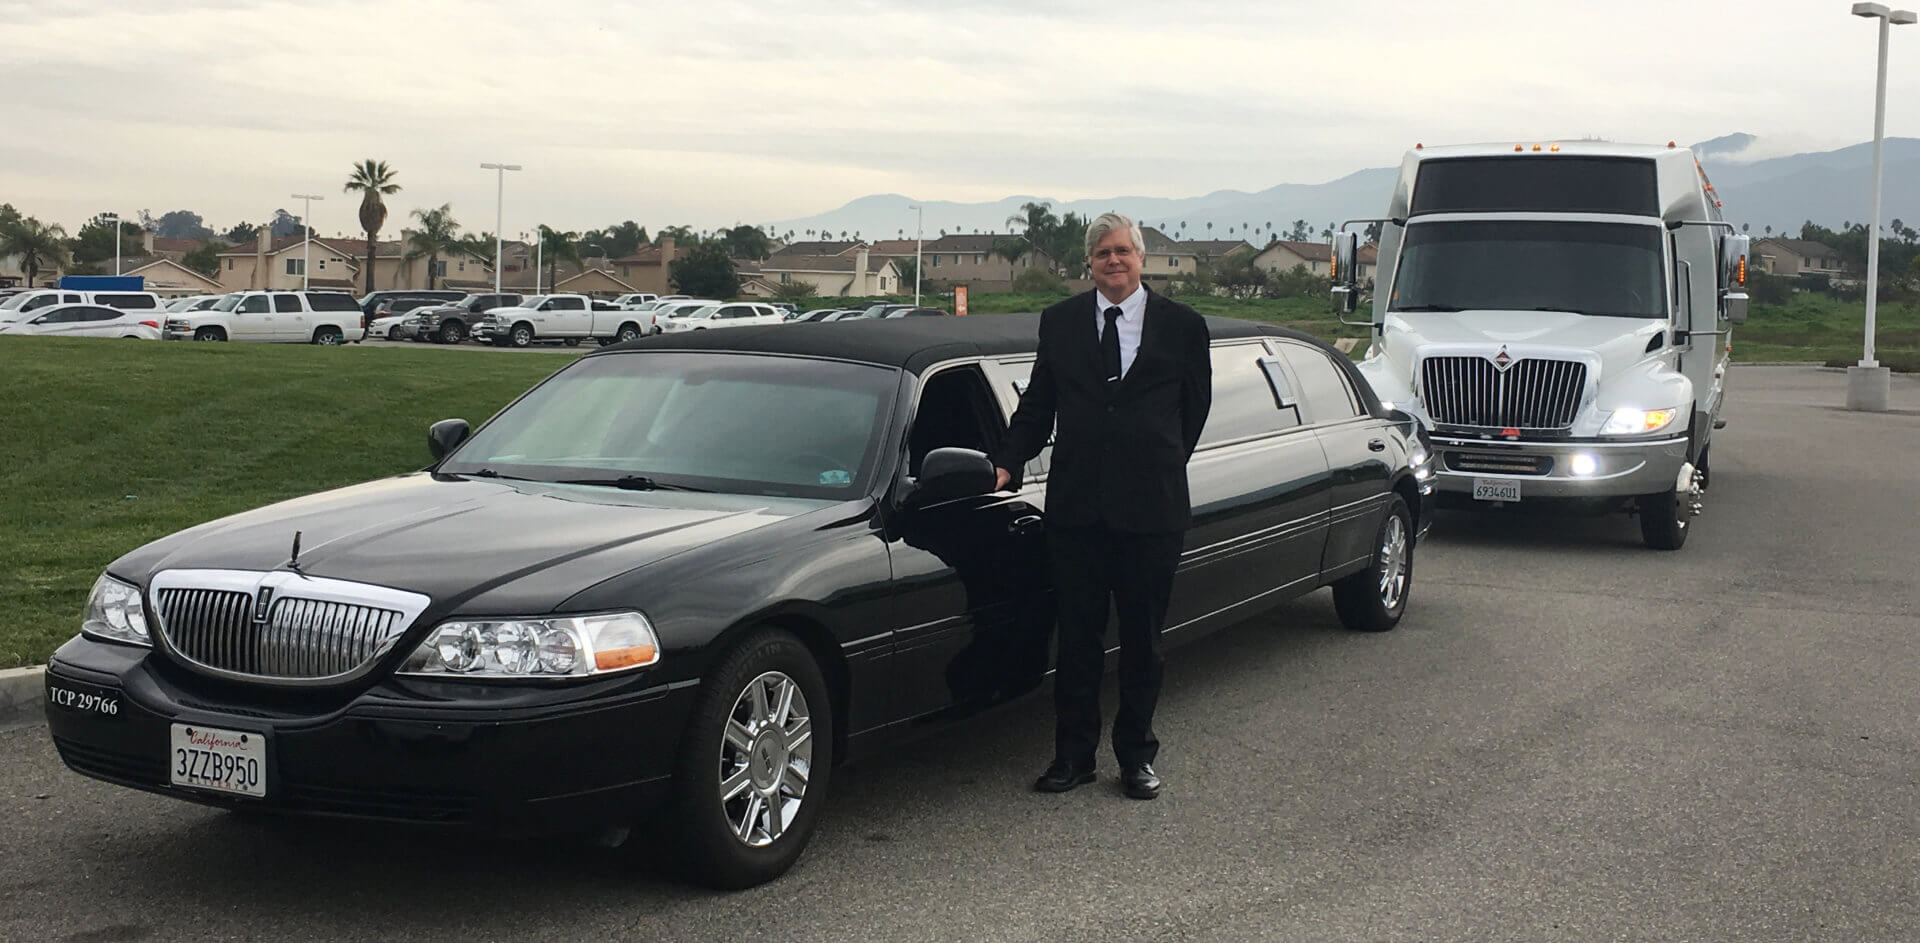 Man with a limousine